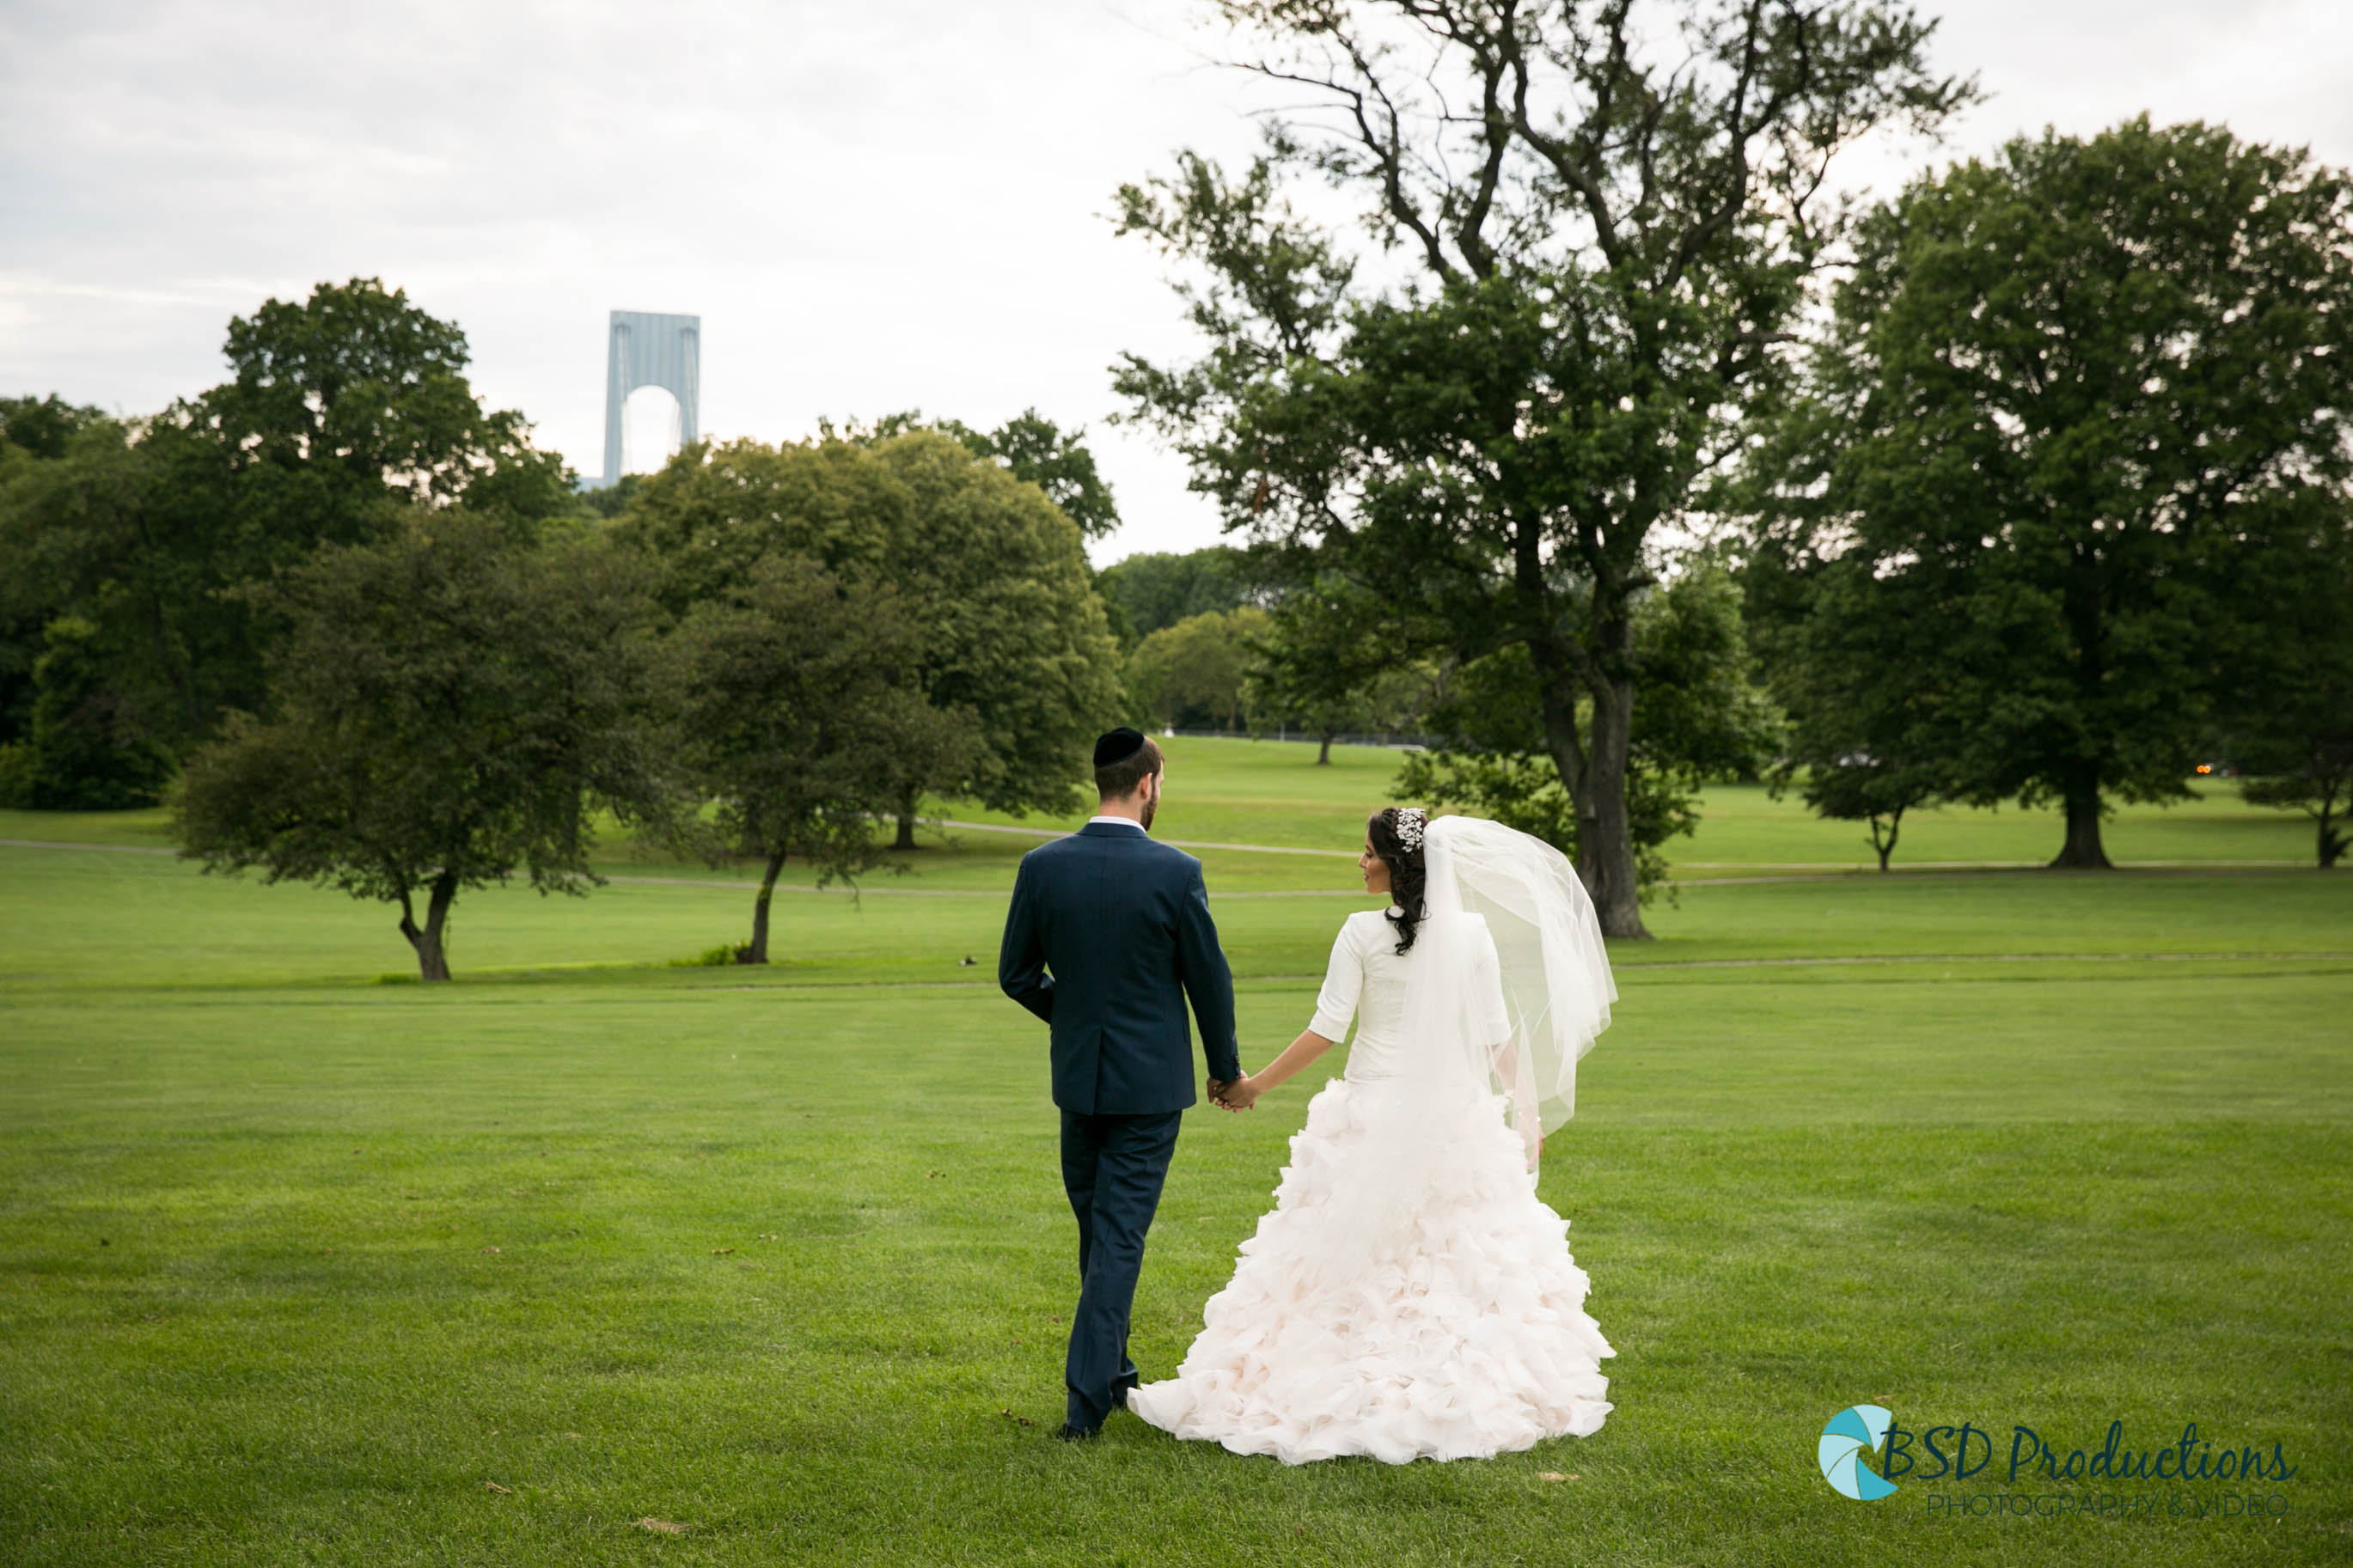 UH5A2813 Wedding – BSD Productions Photography